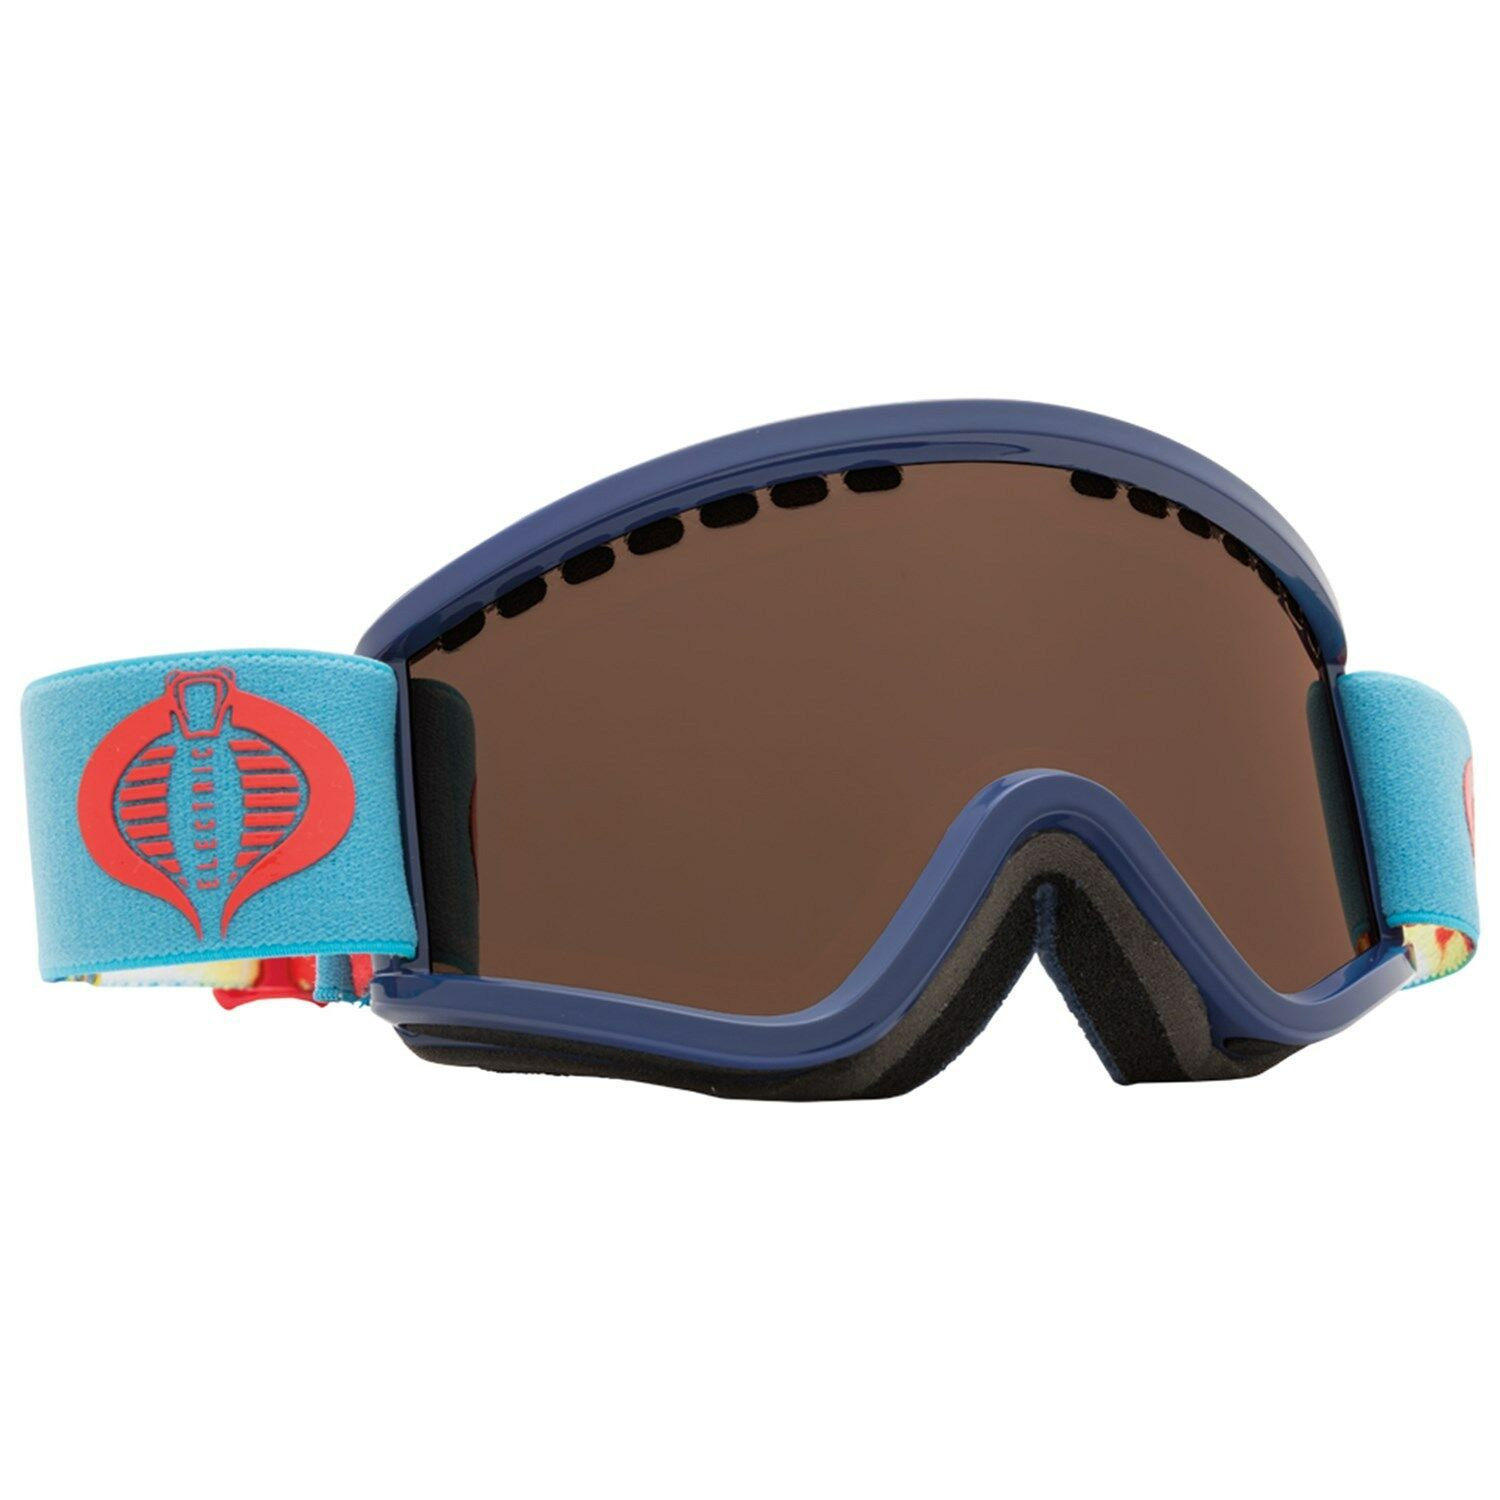 Elektrisch Visuell Egv.k G.I.Joe Cobra Jugend Snowboard Brille (Messing)